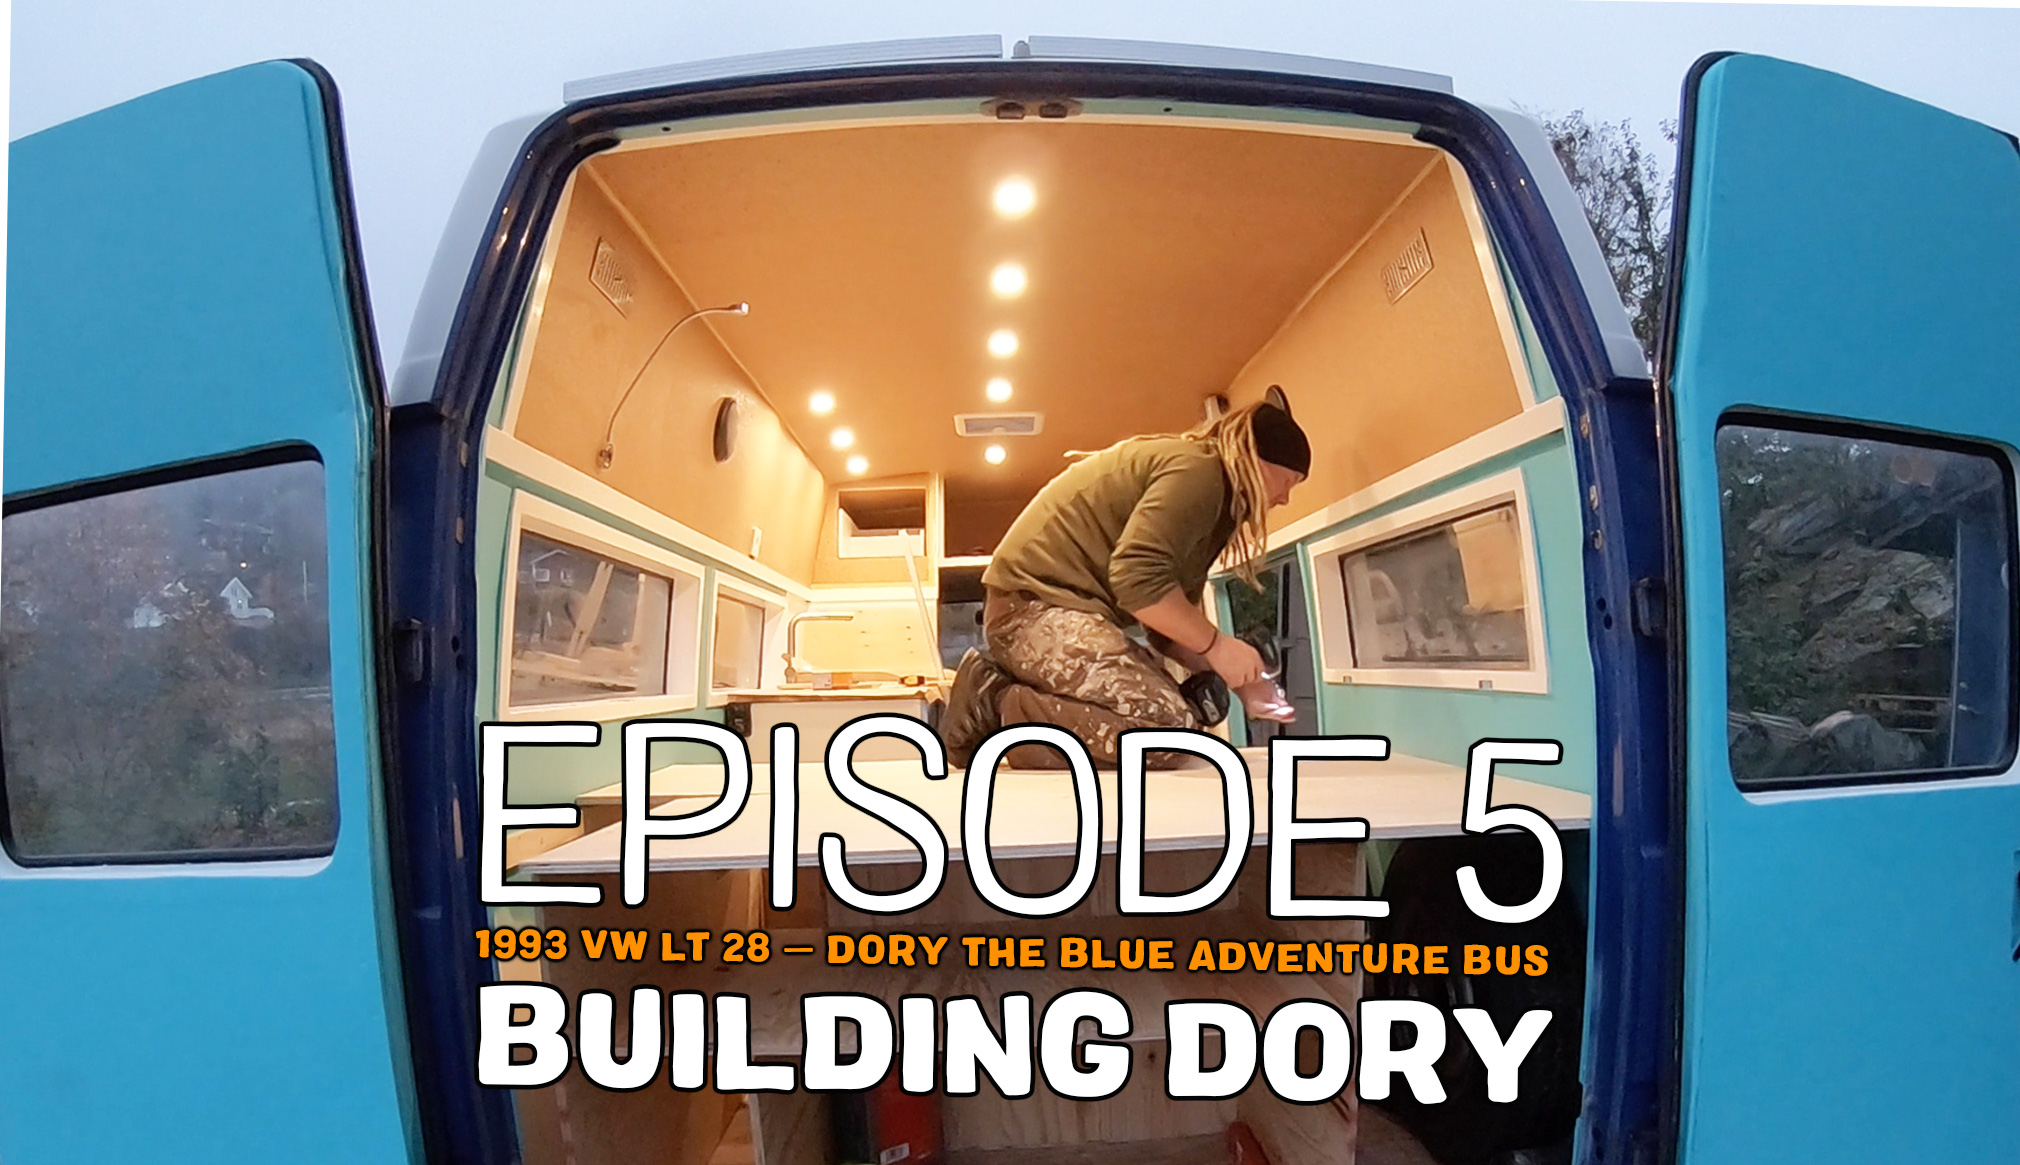 Building Dory episode 5